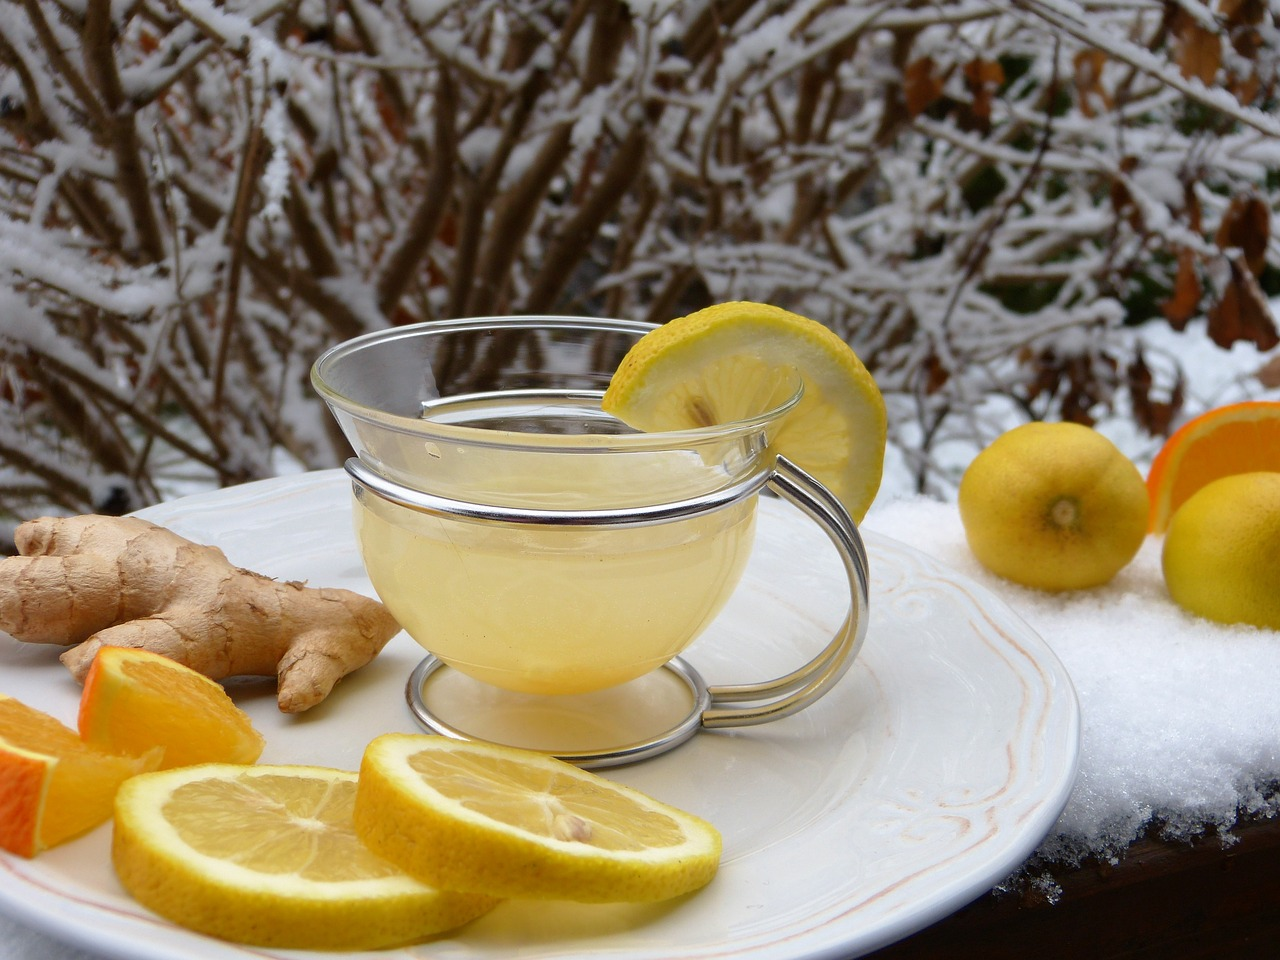 A tea, with lemon and ginger? Great, natural way to boost immunity!